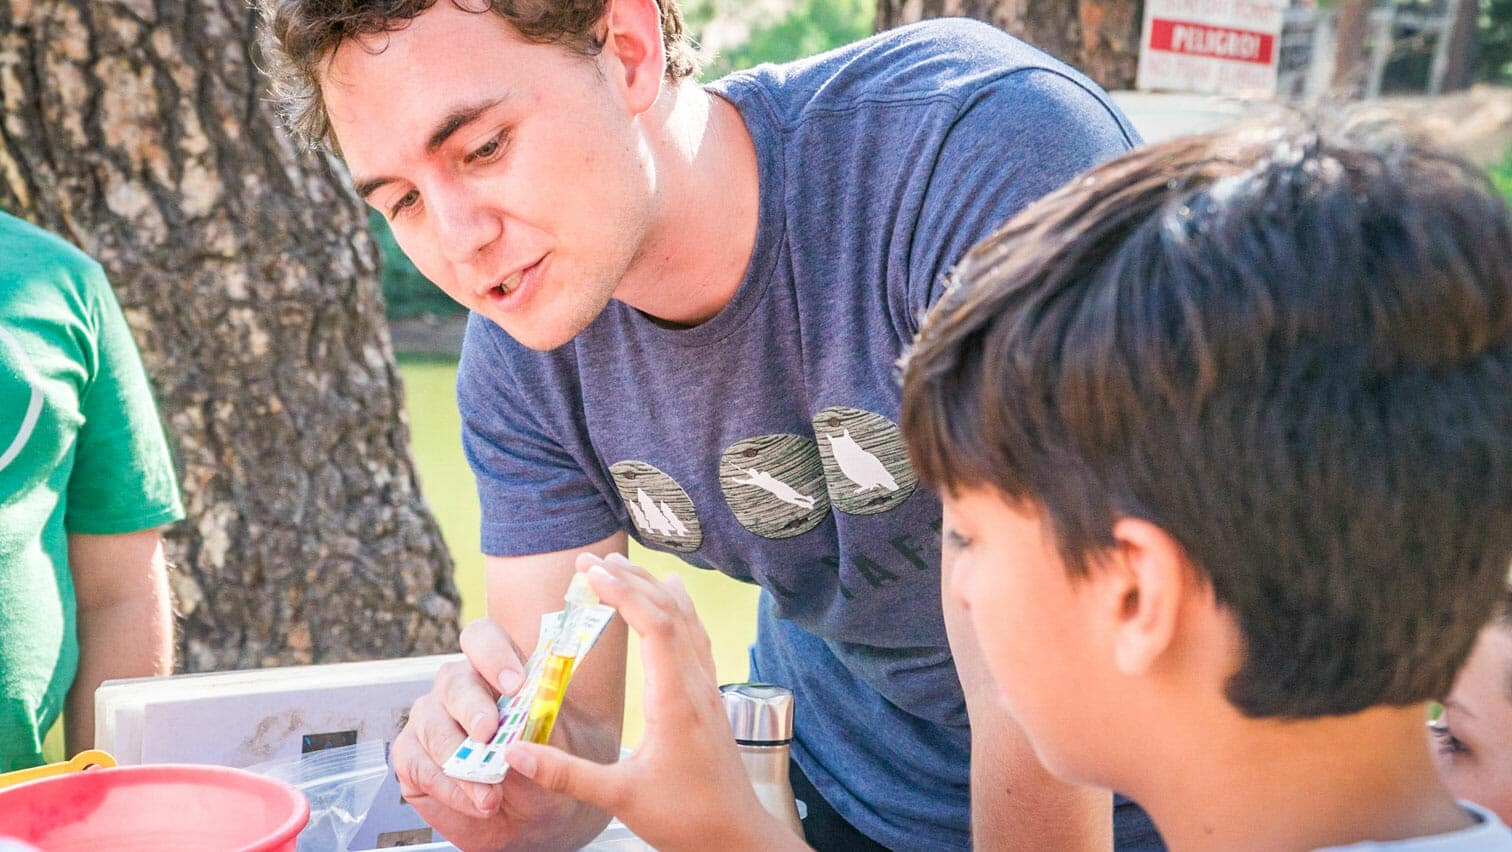 Pali instructor helps student with biology lesson